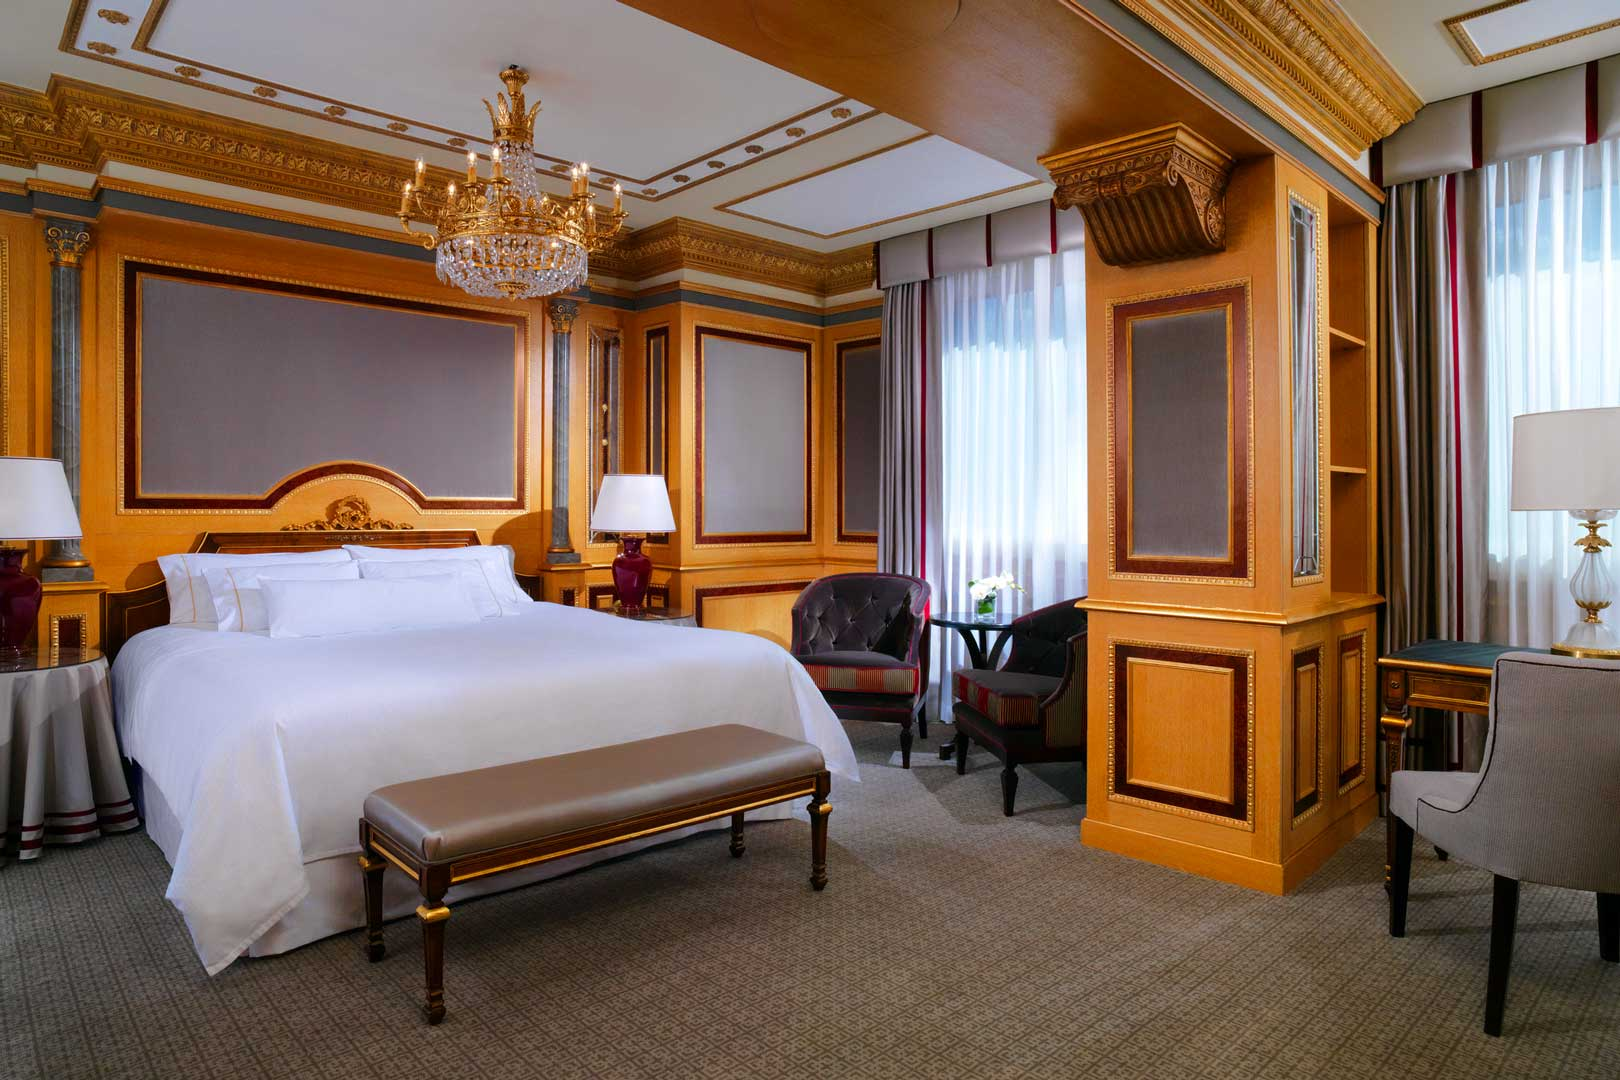 Westin Palace Milan - Grand Deluxe Imperial Room